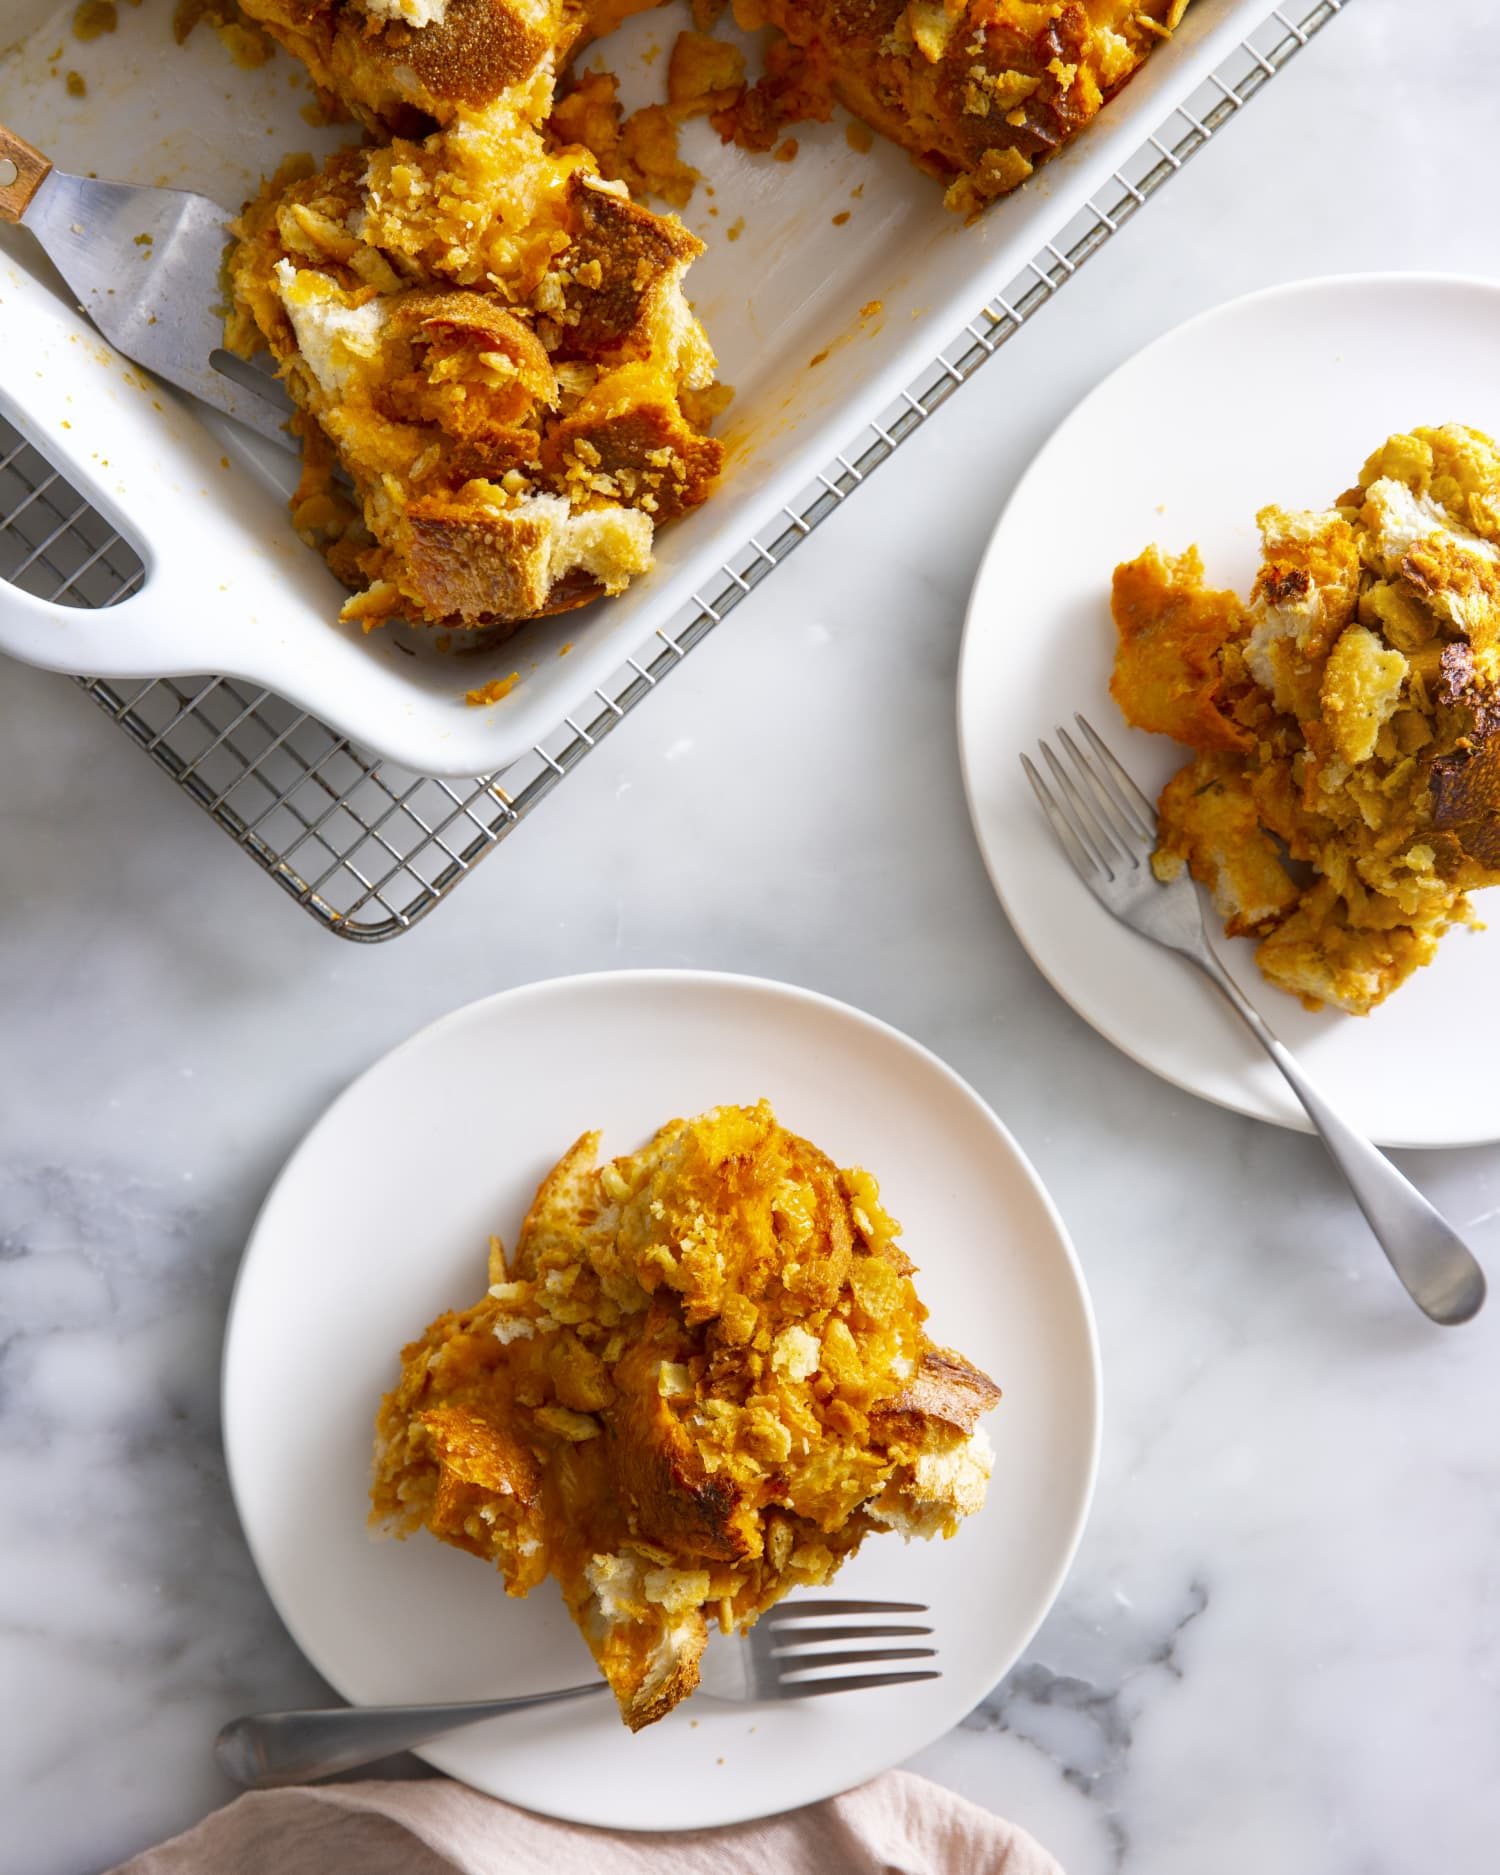 Savory Grilled Cheese French Toast Bake Is a Modern Brunch Favorite